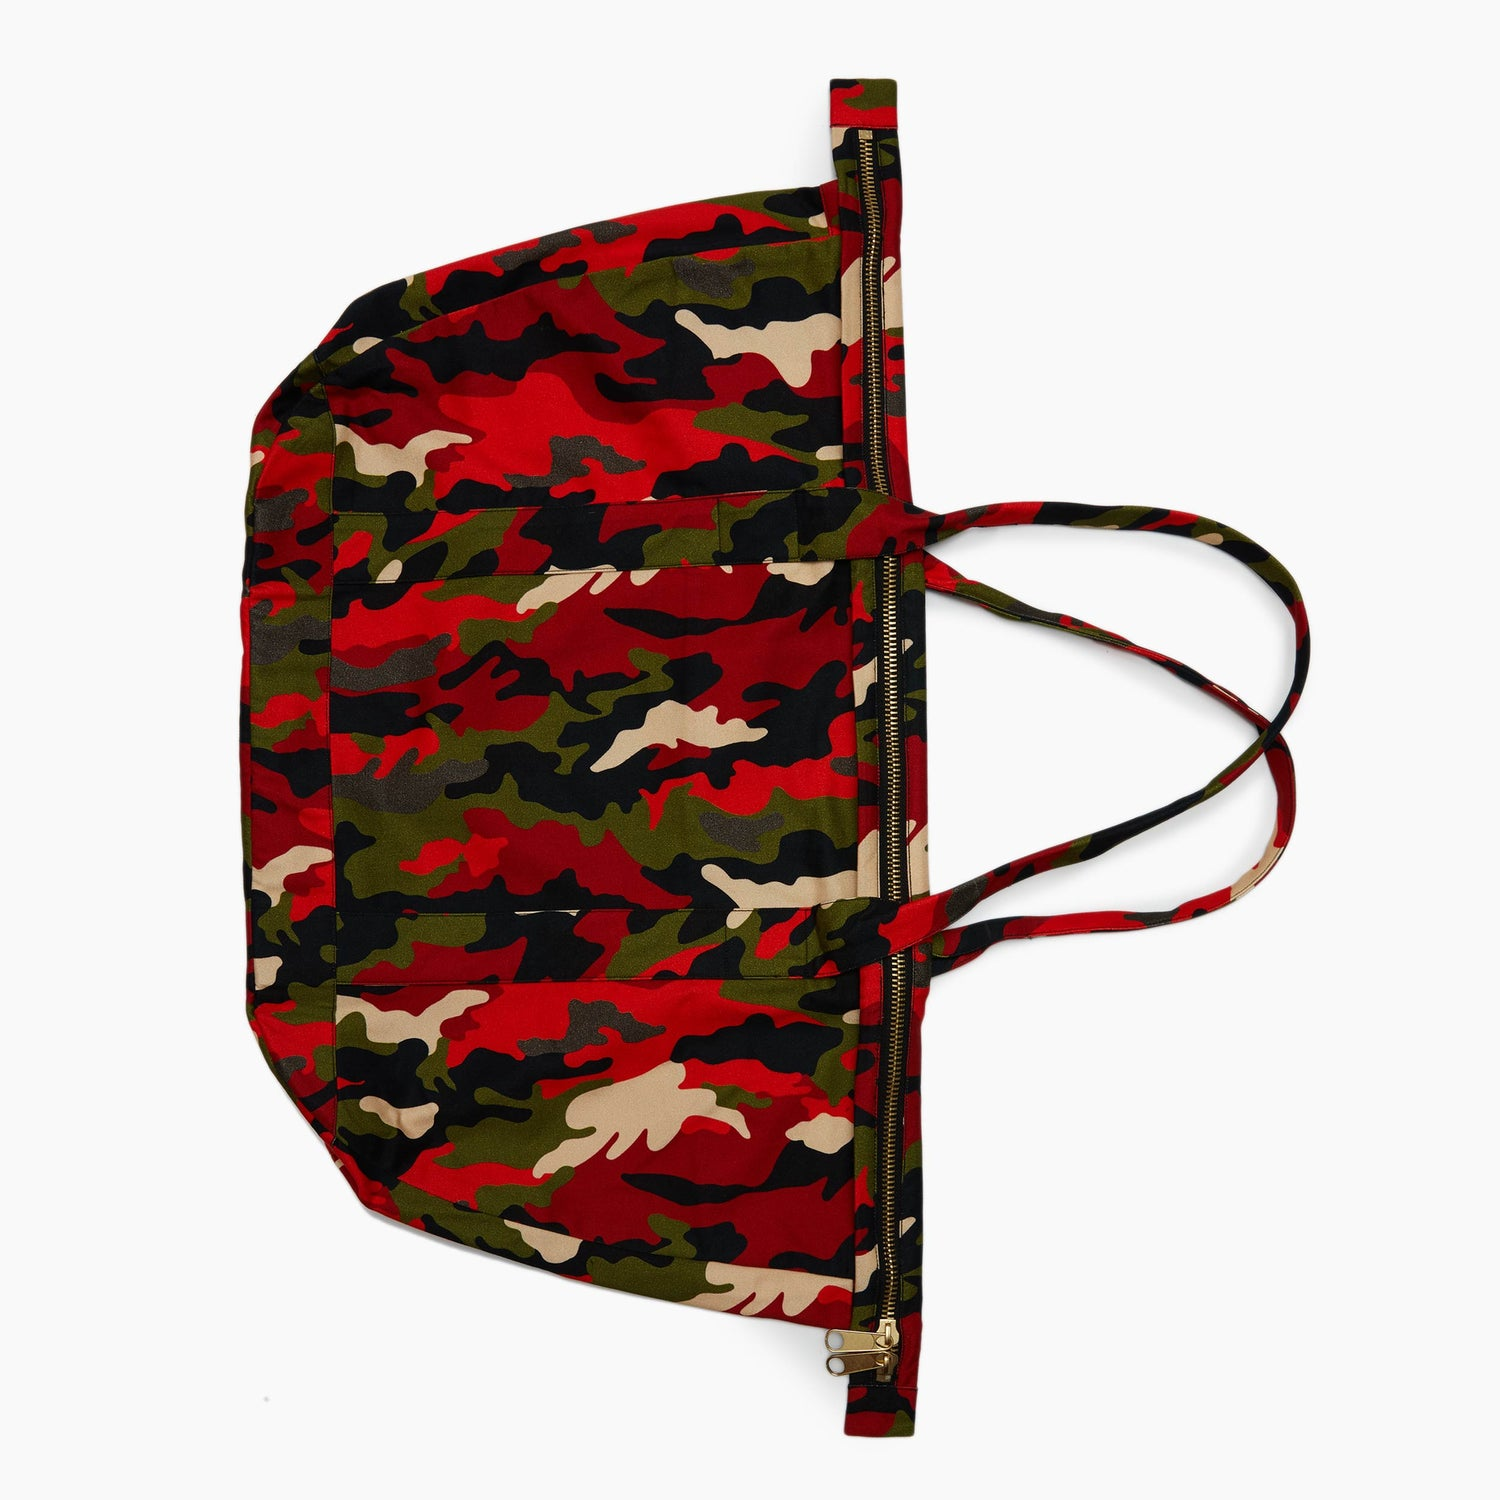 The Modern Nature Camo Satchel